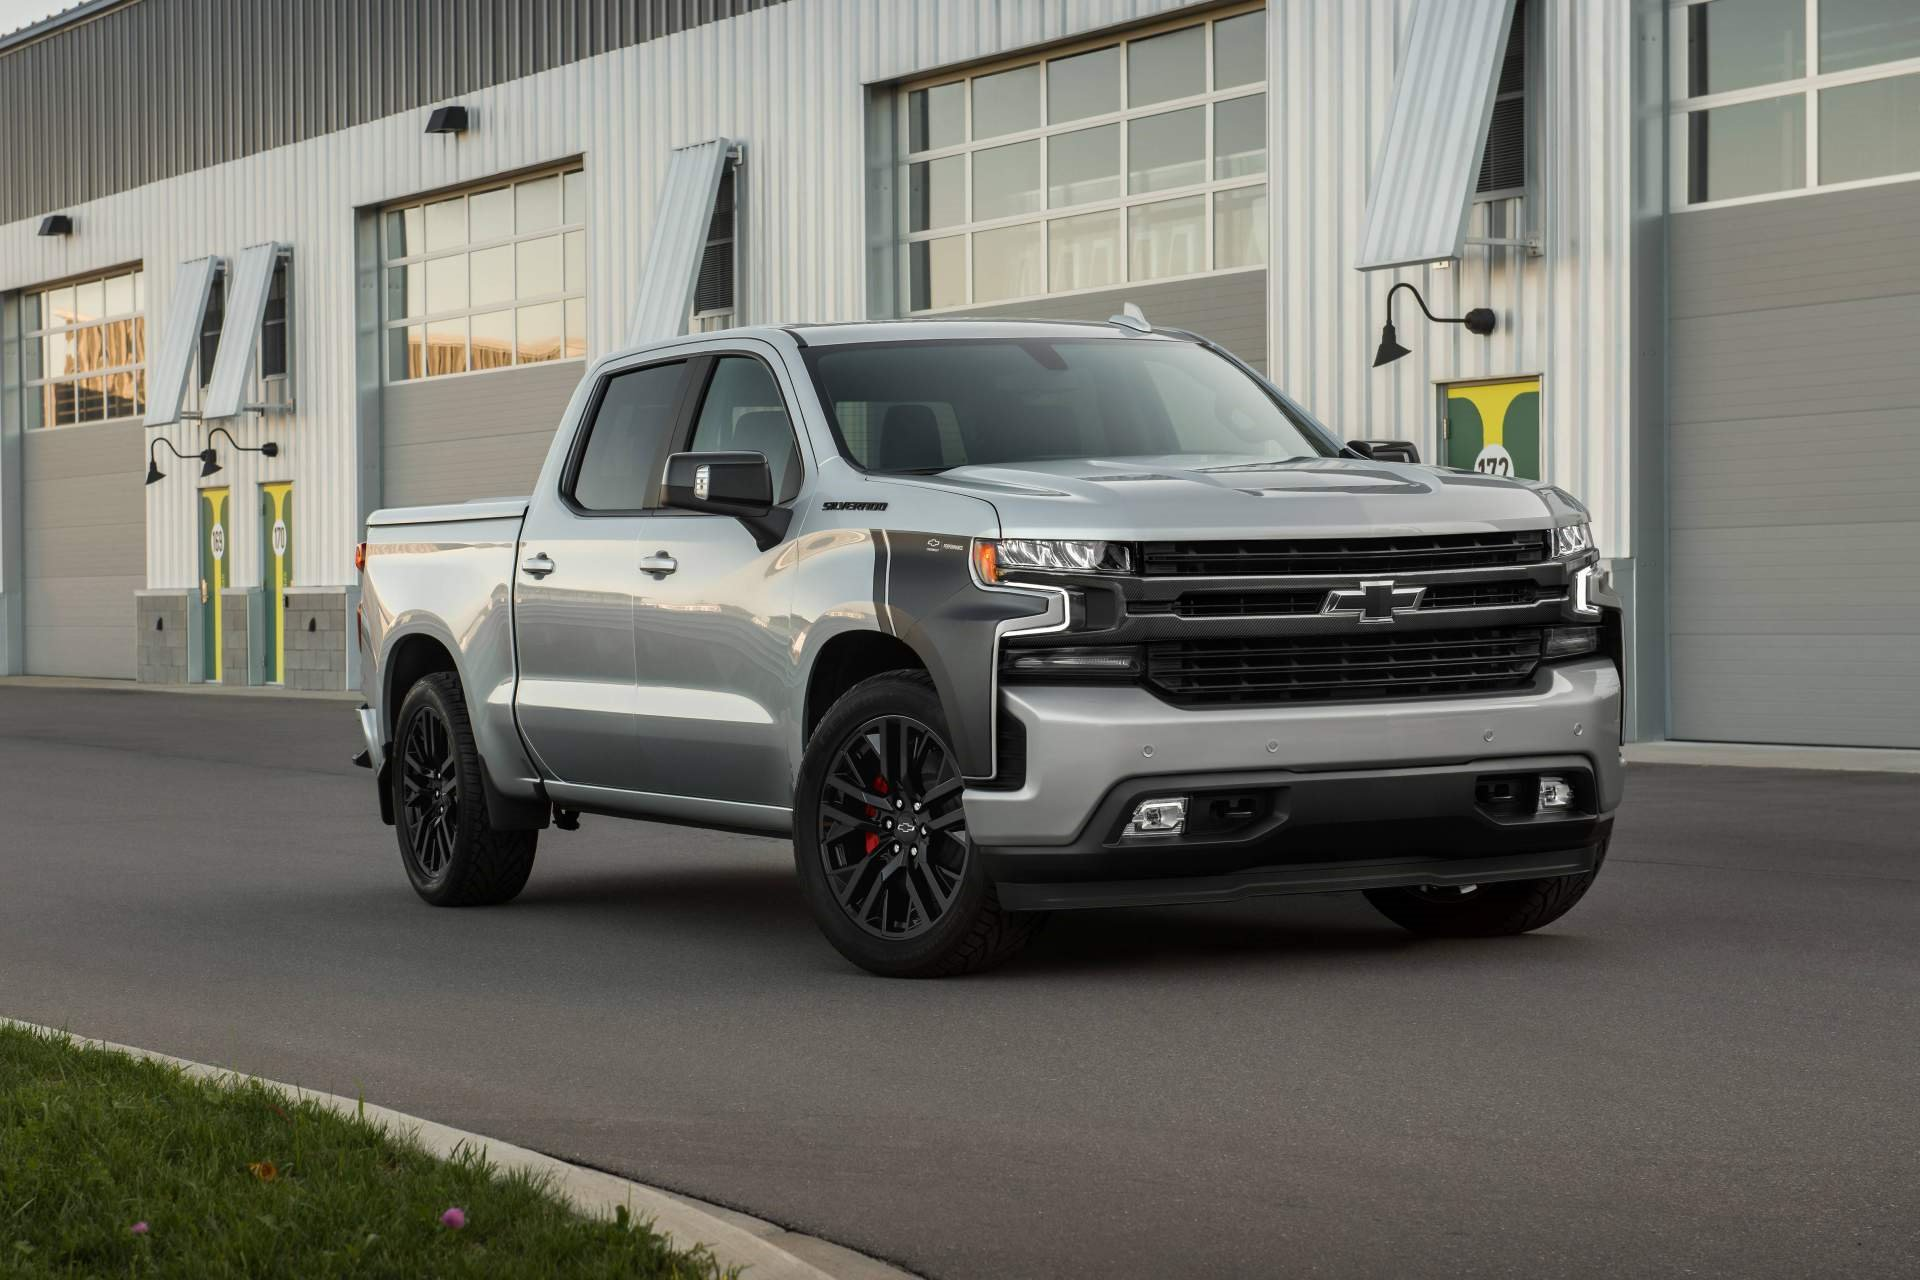 New 2019 Chevrolet-Silverado 1500 LT Silverado 1500 LT for sale $40,200 at M and V Leasing in Brooklyn NY 11223 1